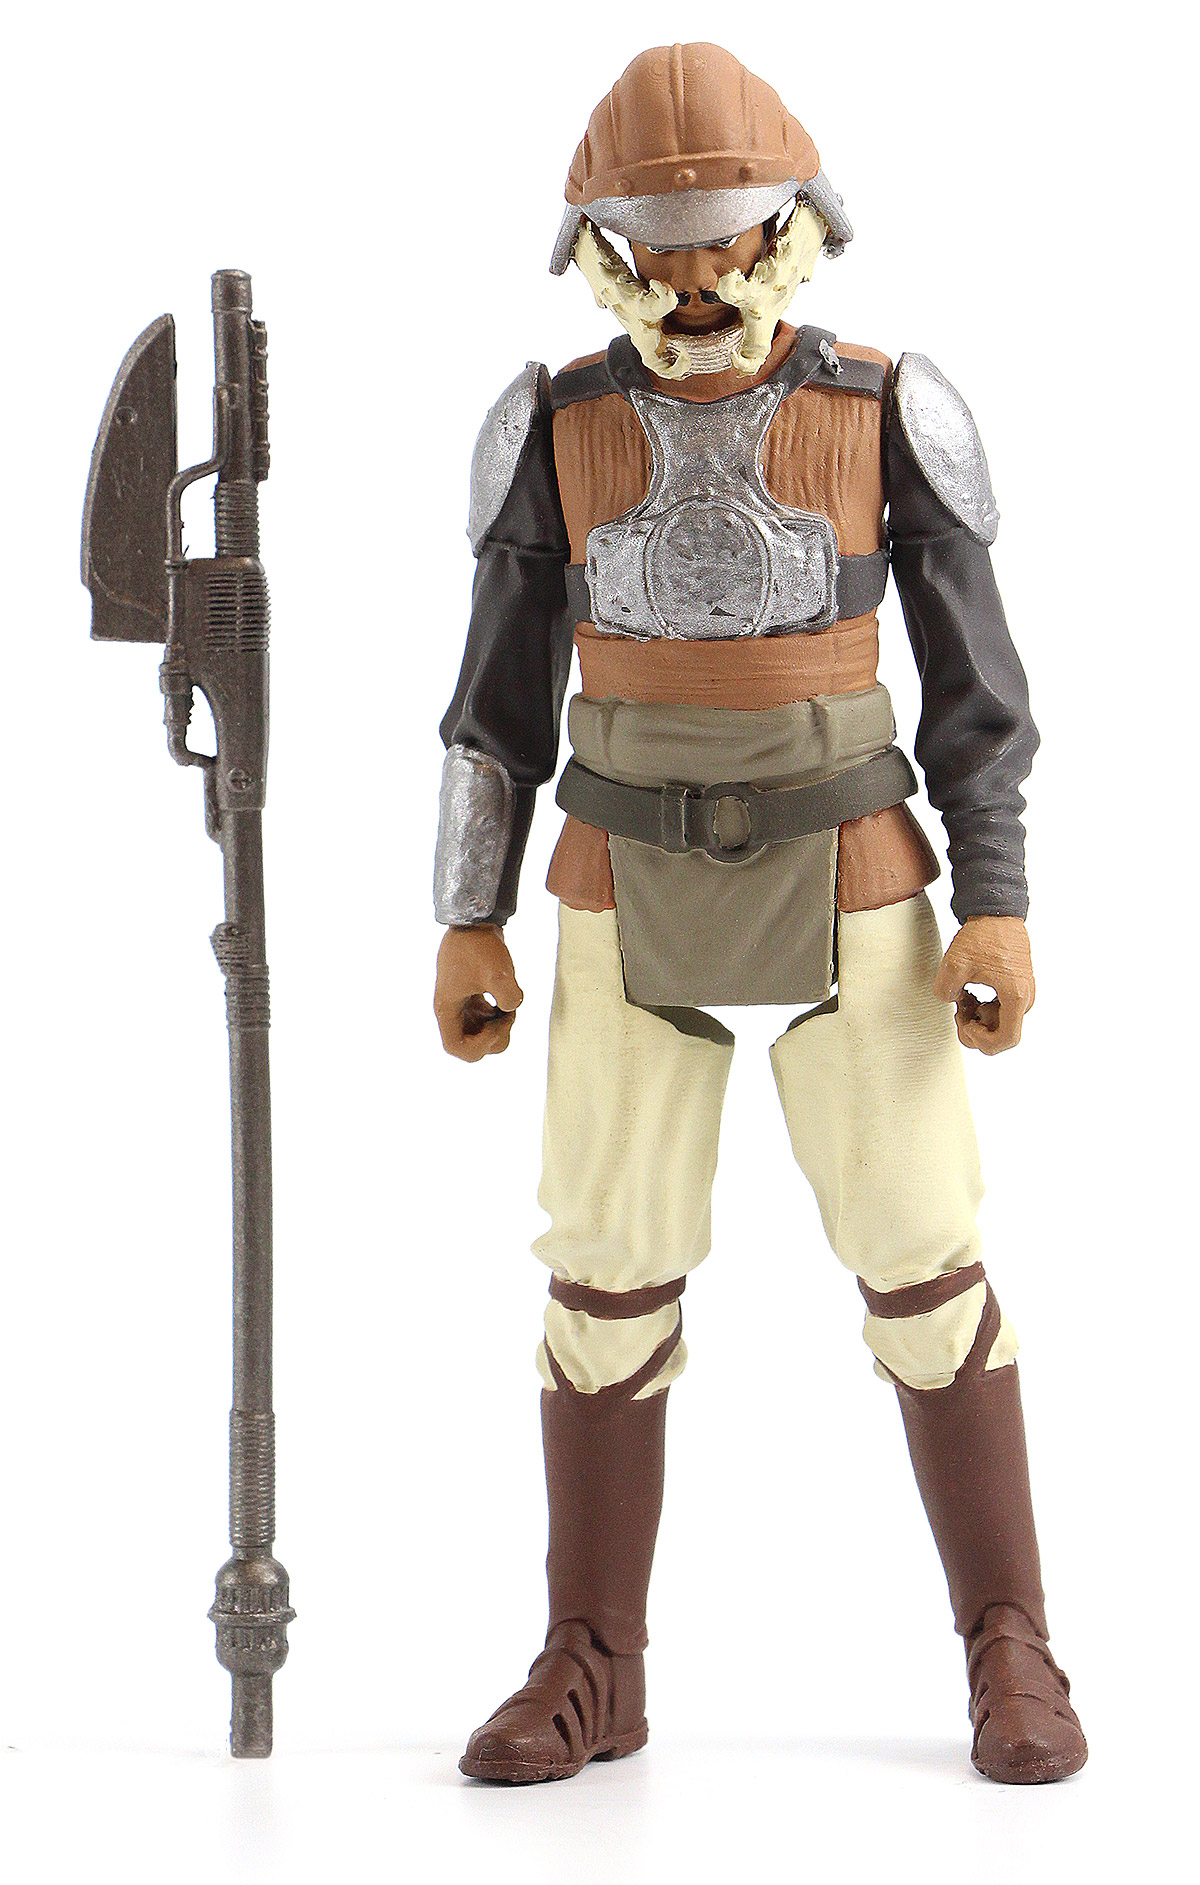 New Star Wars Toys : Hasbro reveals new star wars action figures at nycc